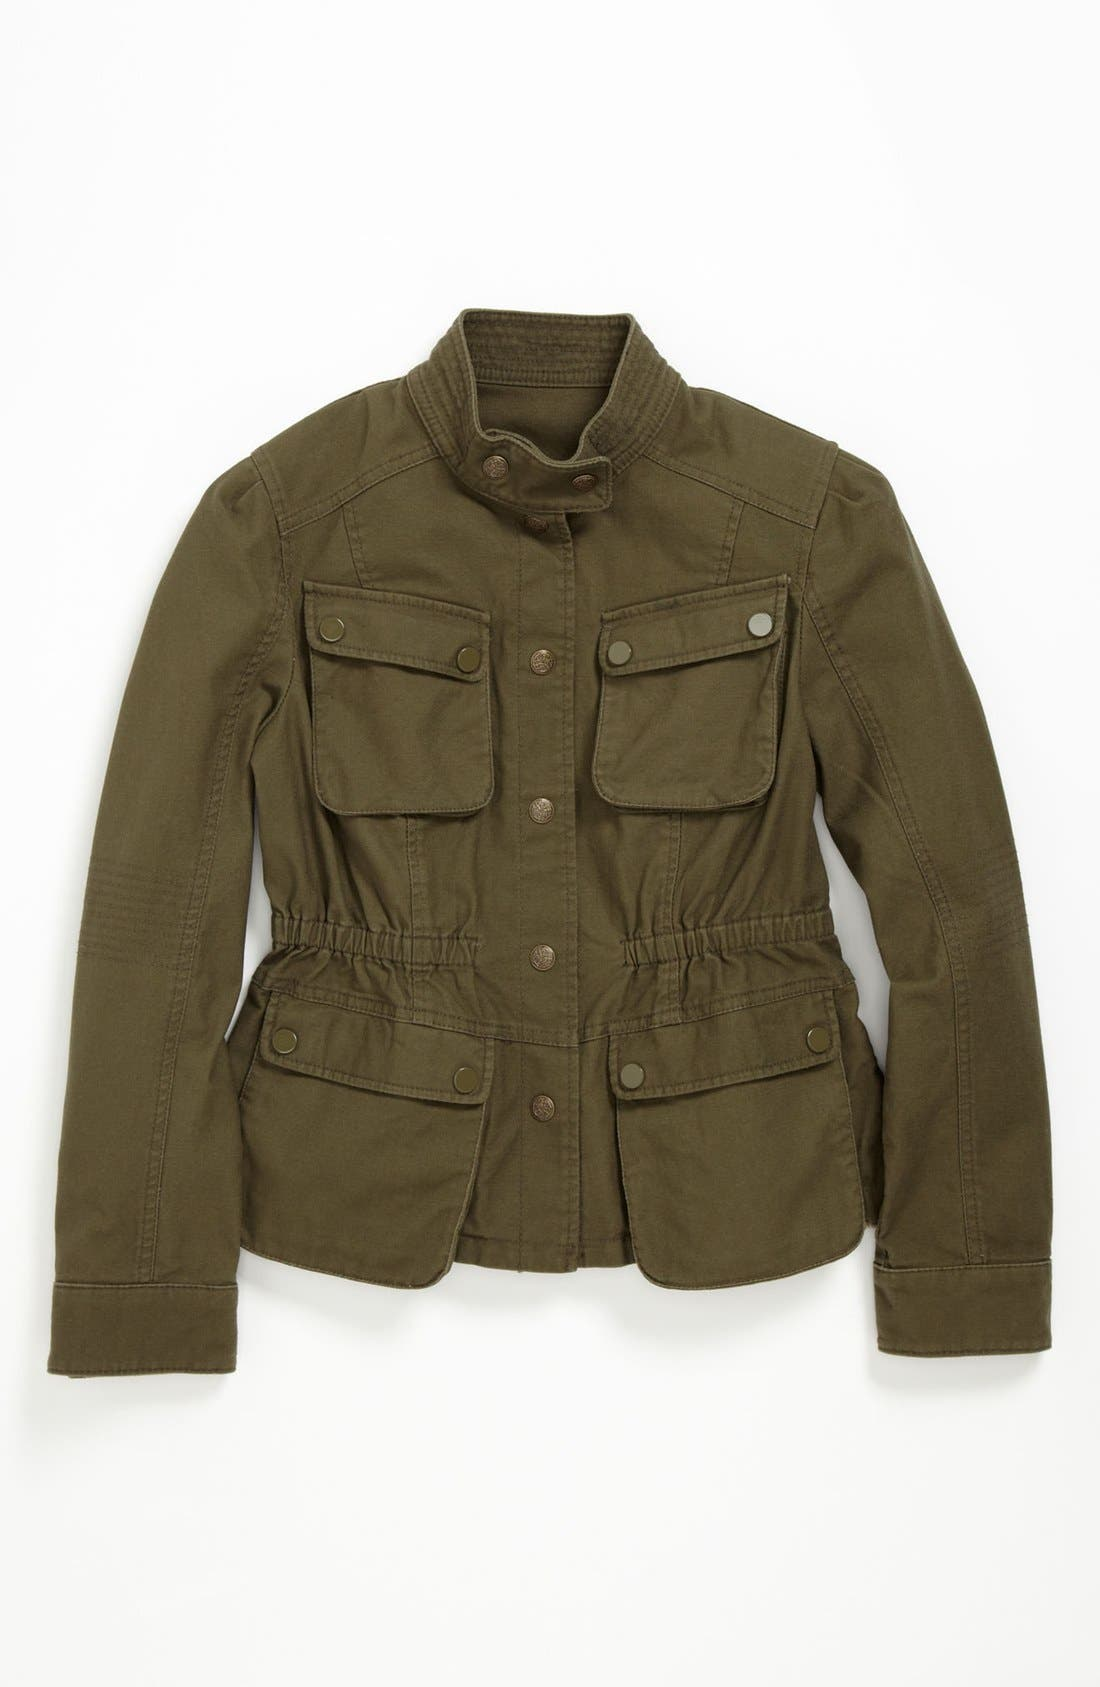 Alternate Image 1 Selected - Collection B Cotton Cargo Jacket (Big Girls)